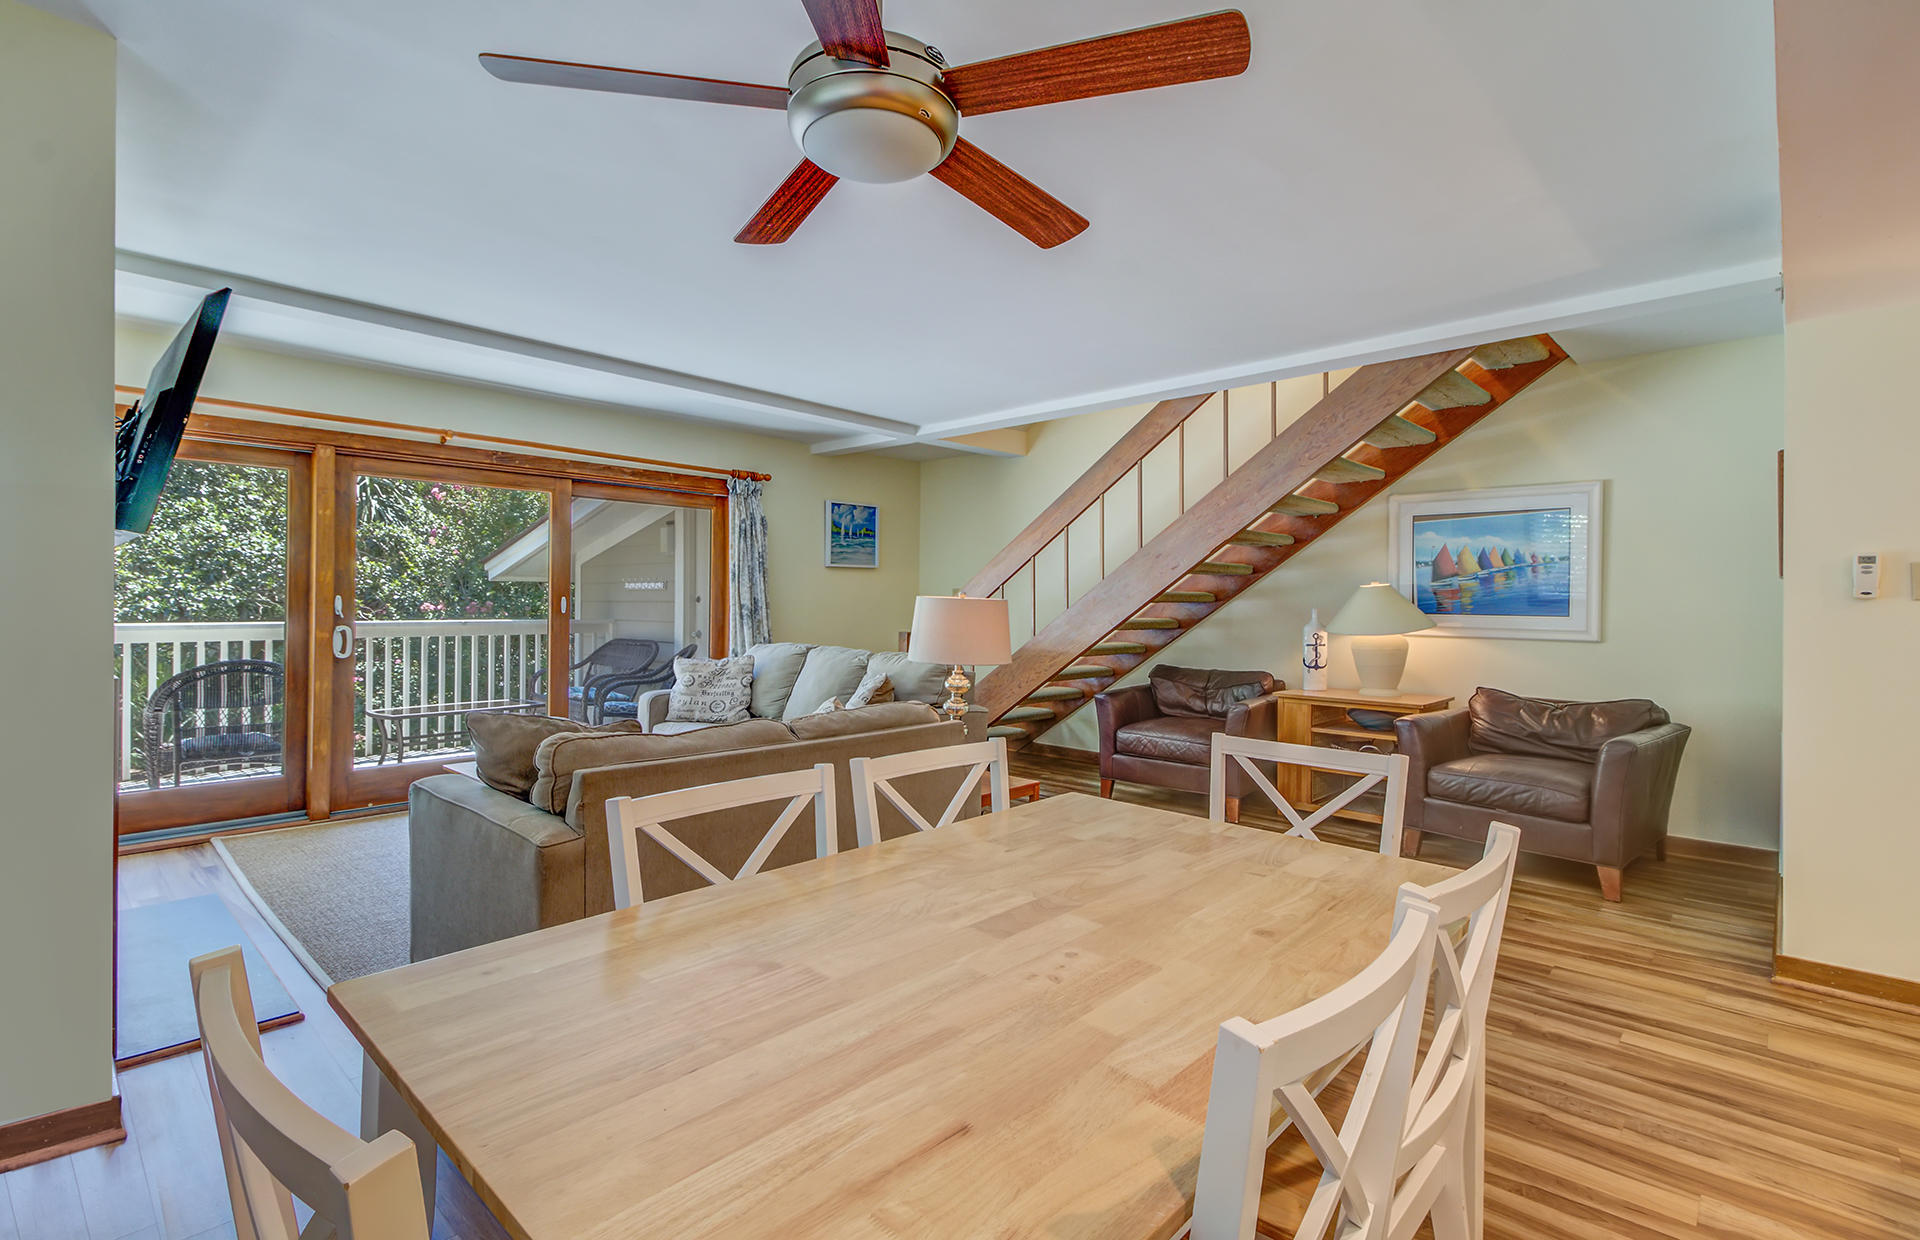 Wild Dunes Homes For Sale - 5 Seagrove, Isle of Palms, SC - 0